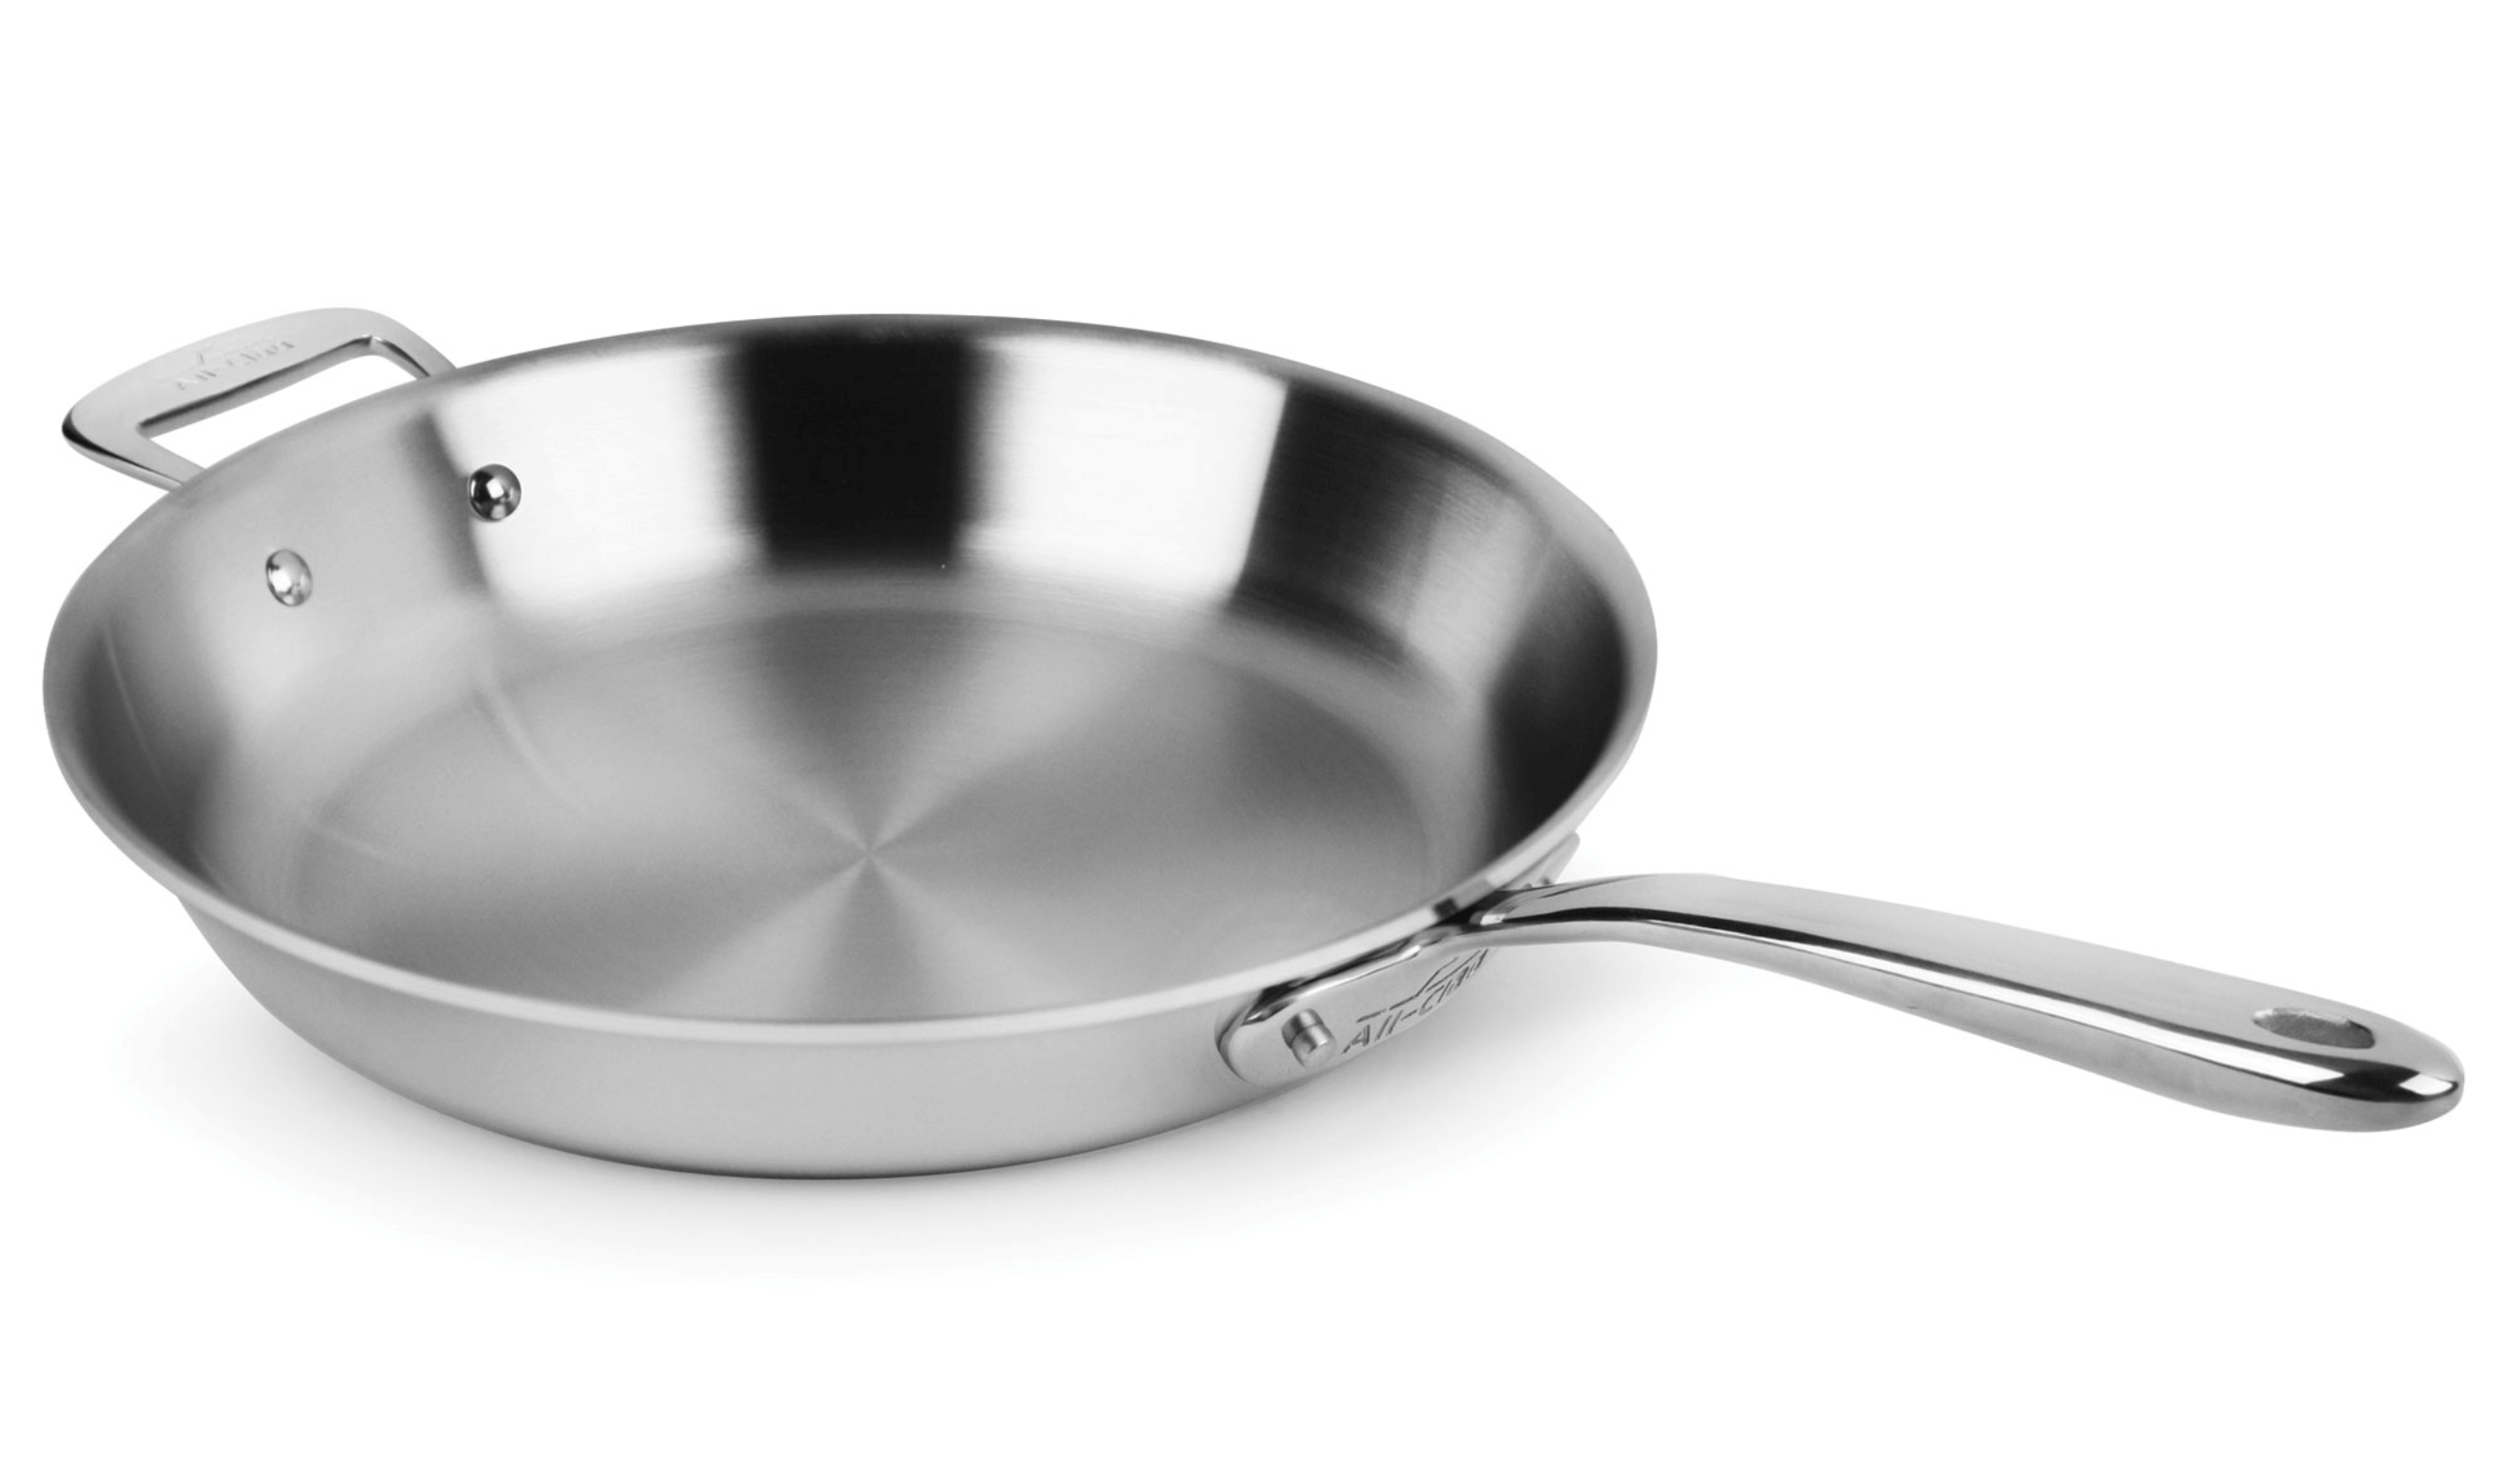 All-Clad Stainless 12″ Covered Fry Pan's